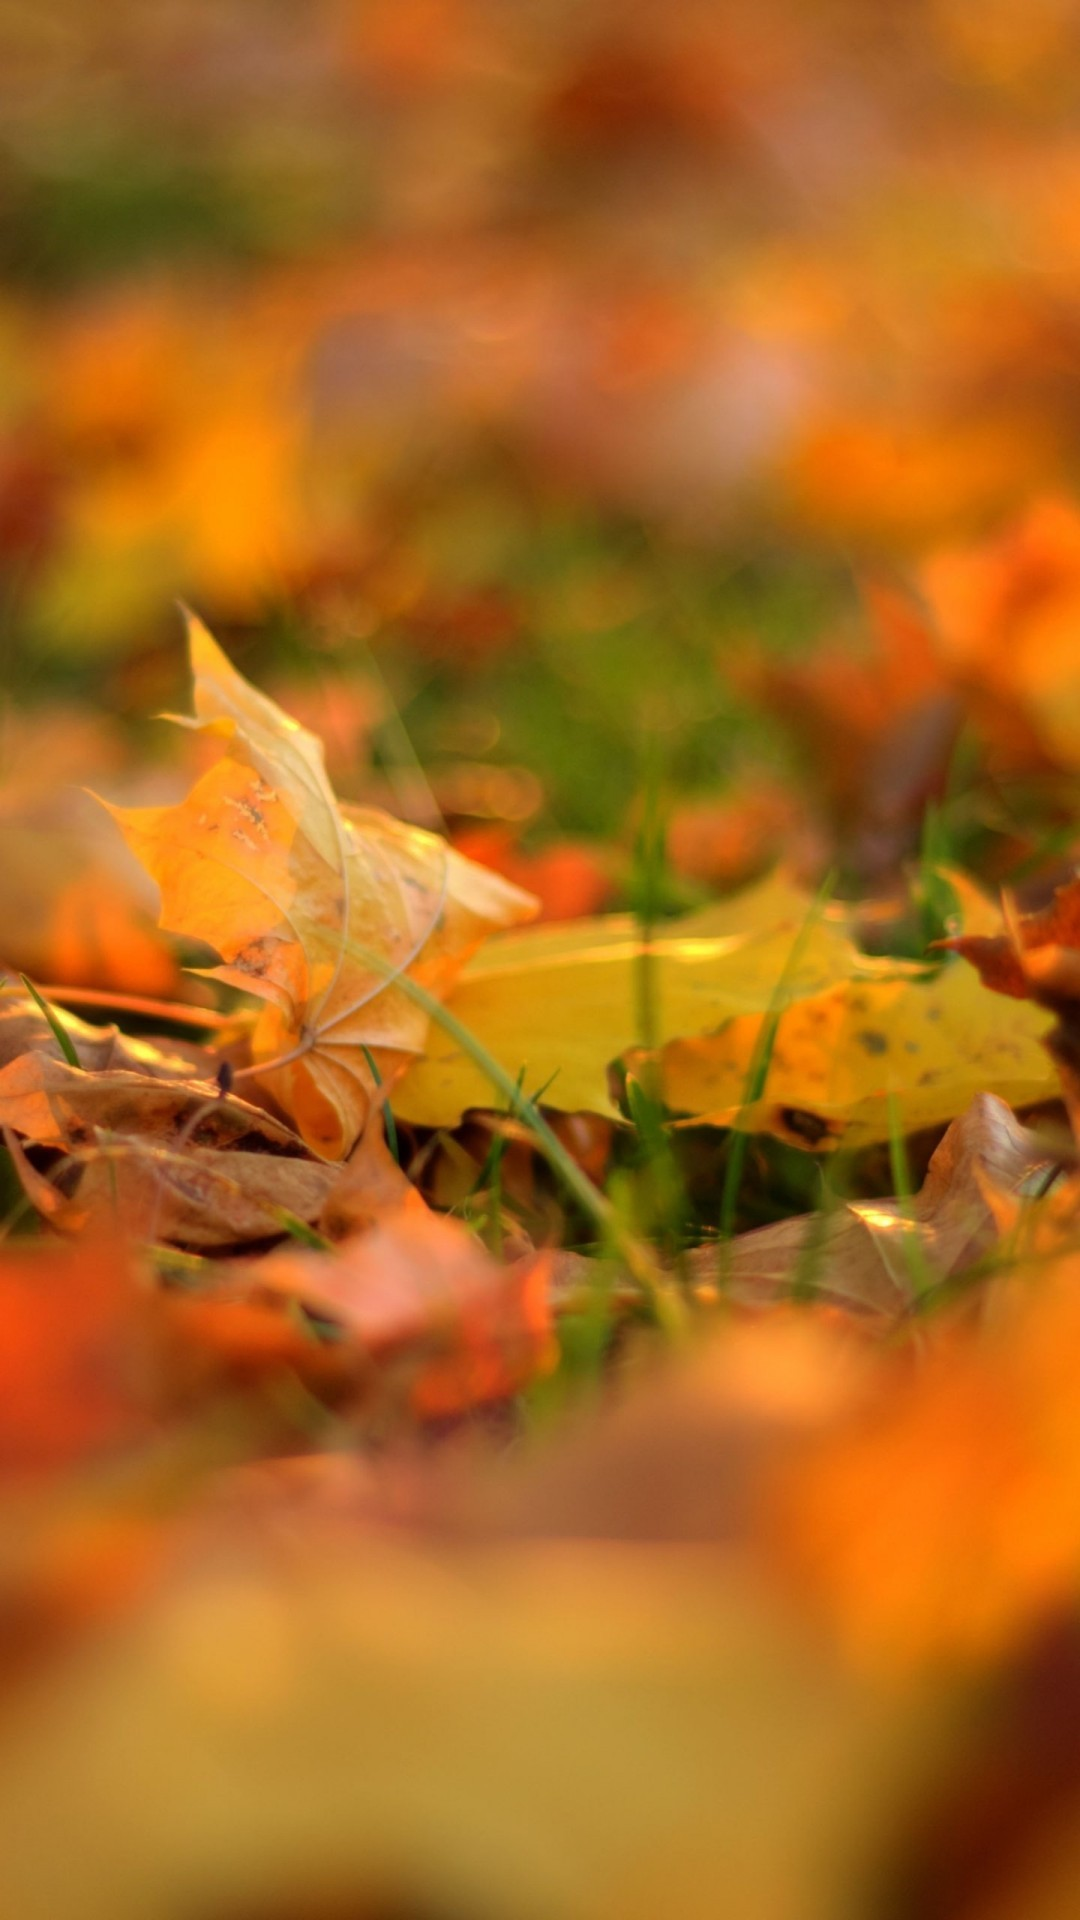 Autumn Hd Wallpapers For Xiaomi Redmi Note 3 Wallpapers Pictures